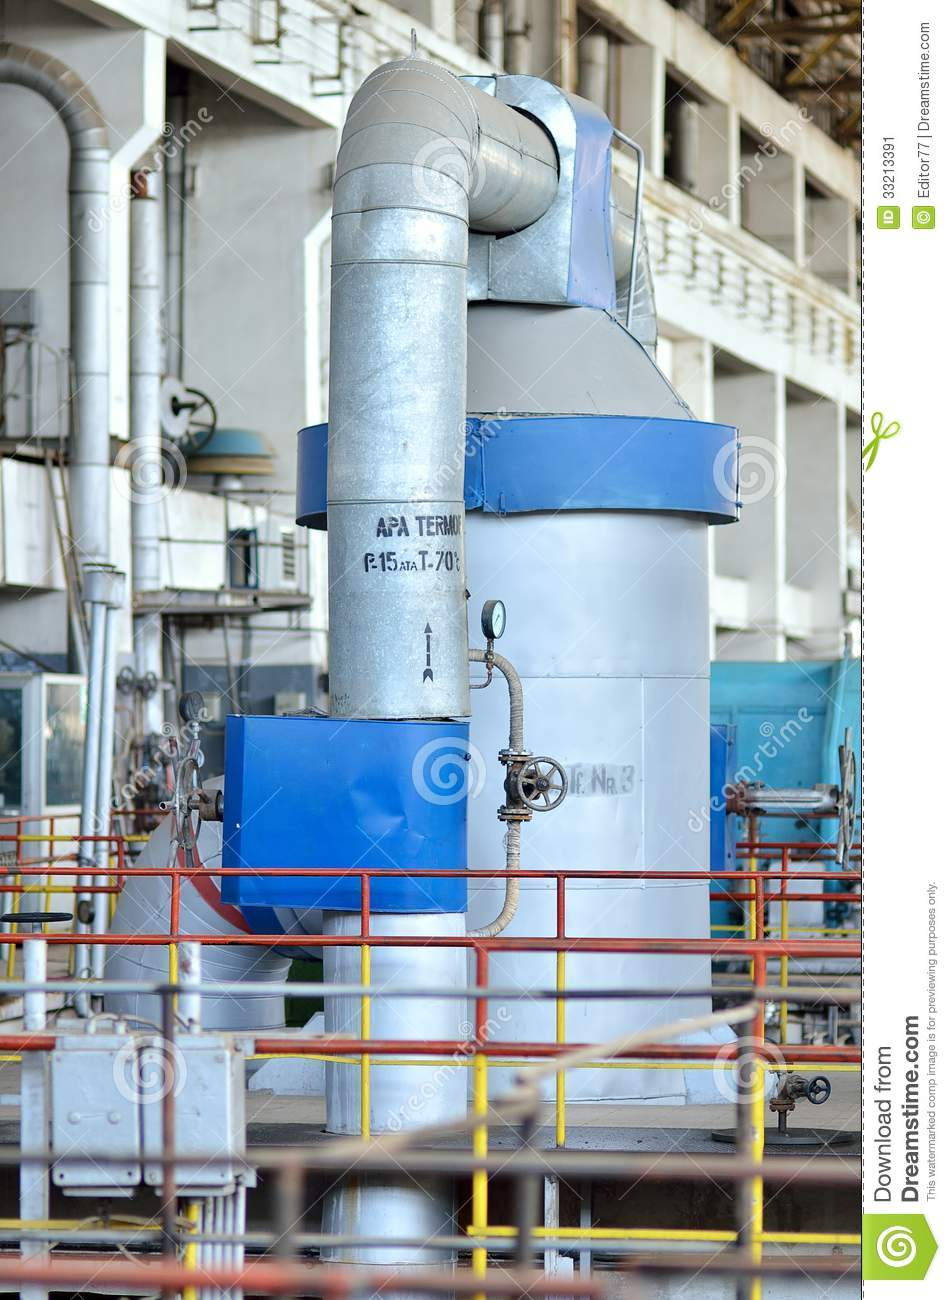 Thermal power plant #14 stock image. Image of inside - 33213391